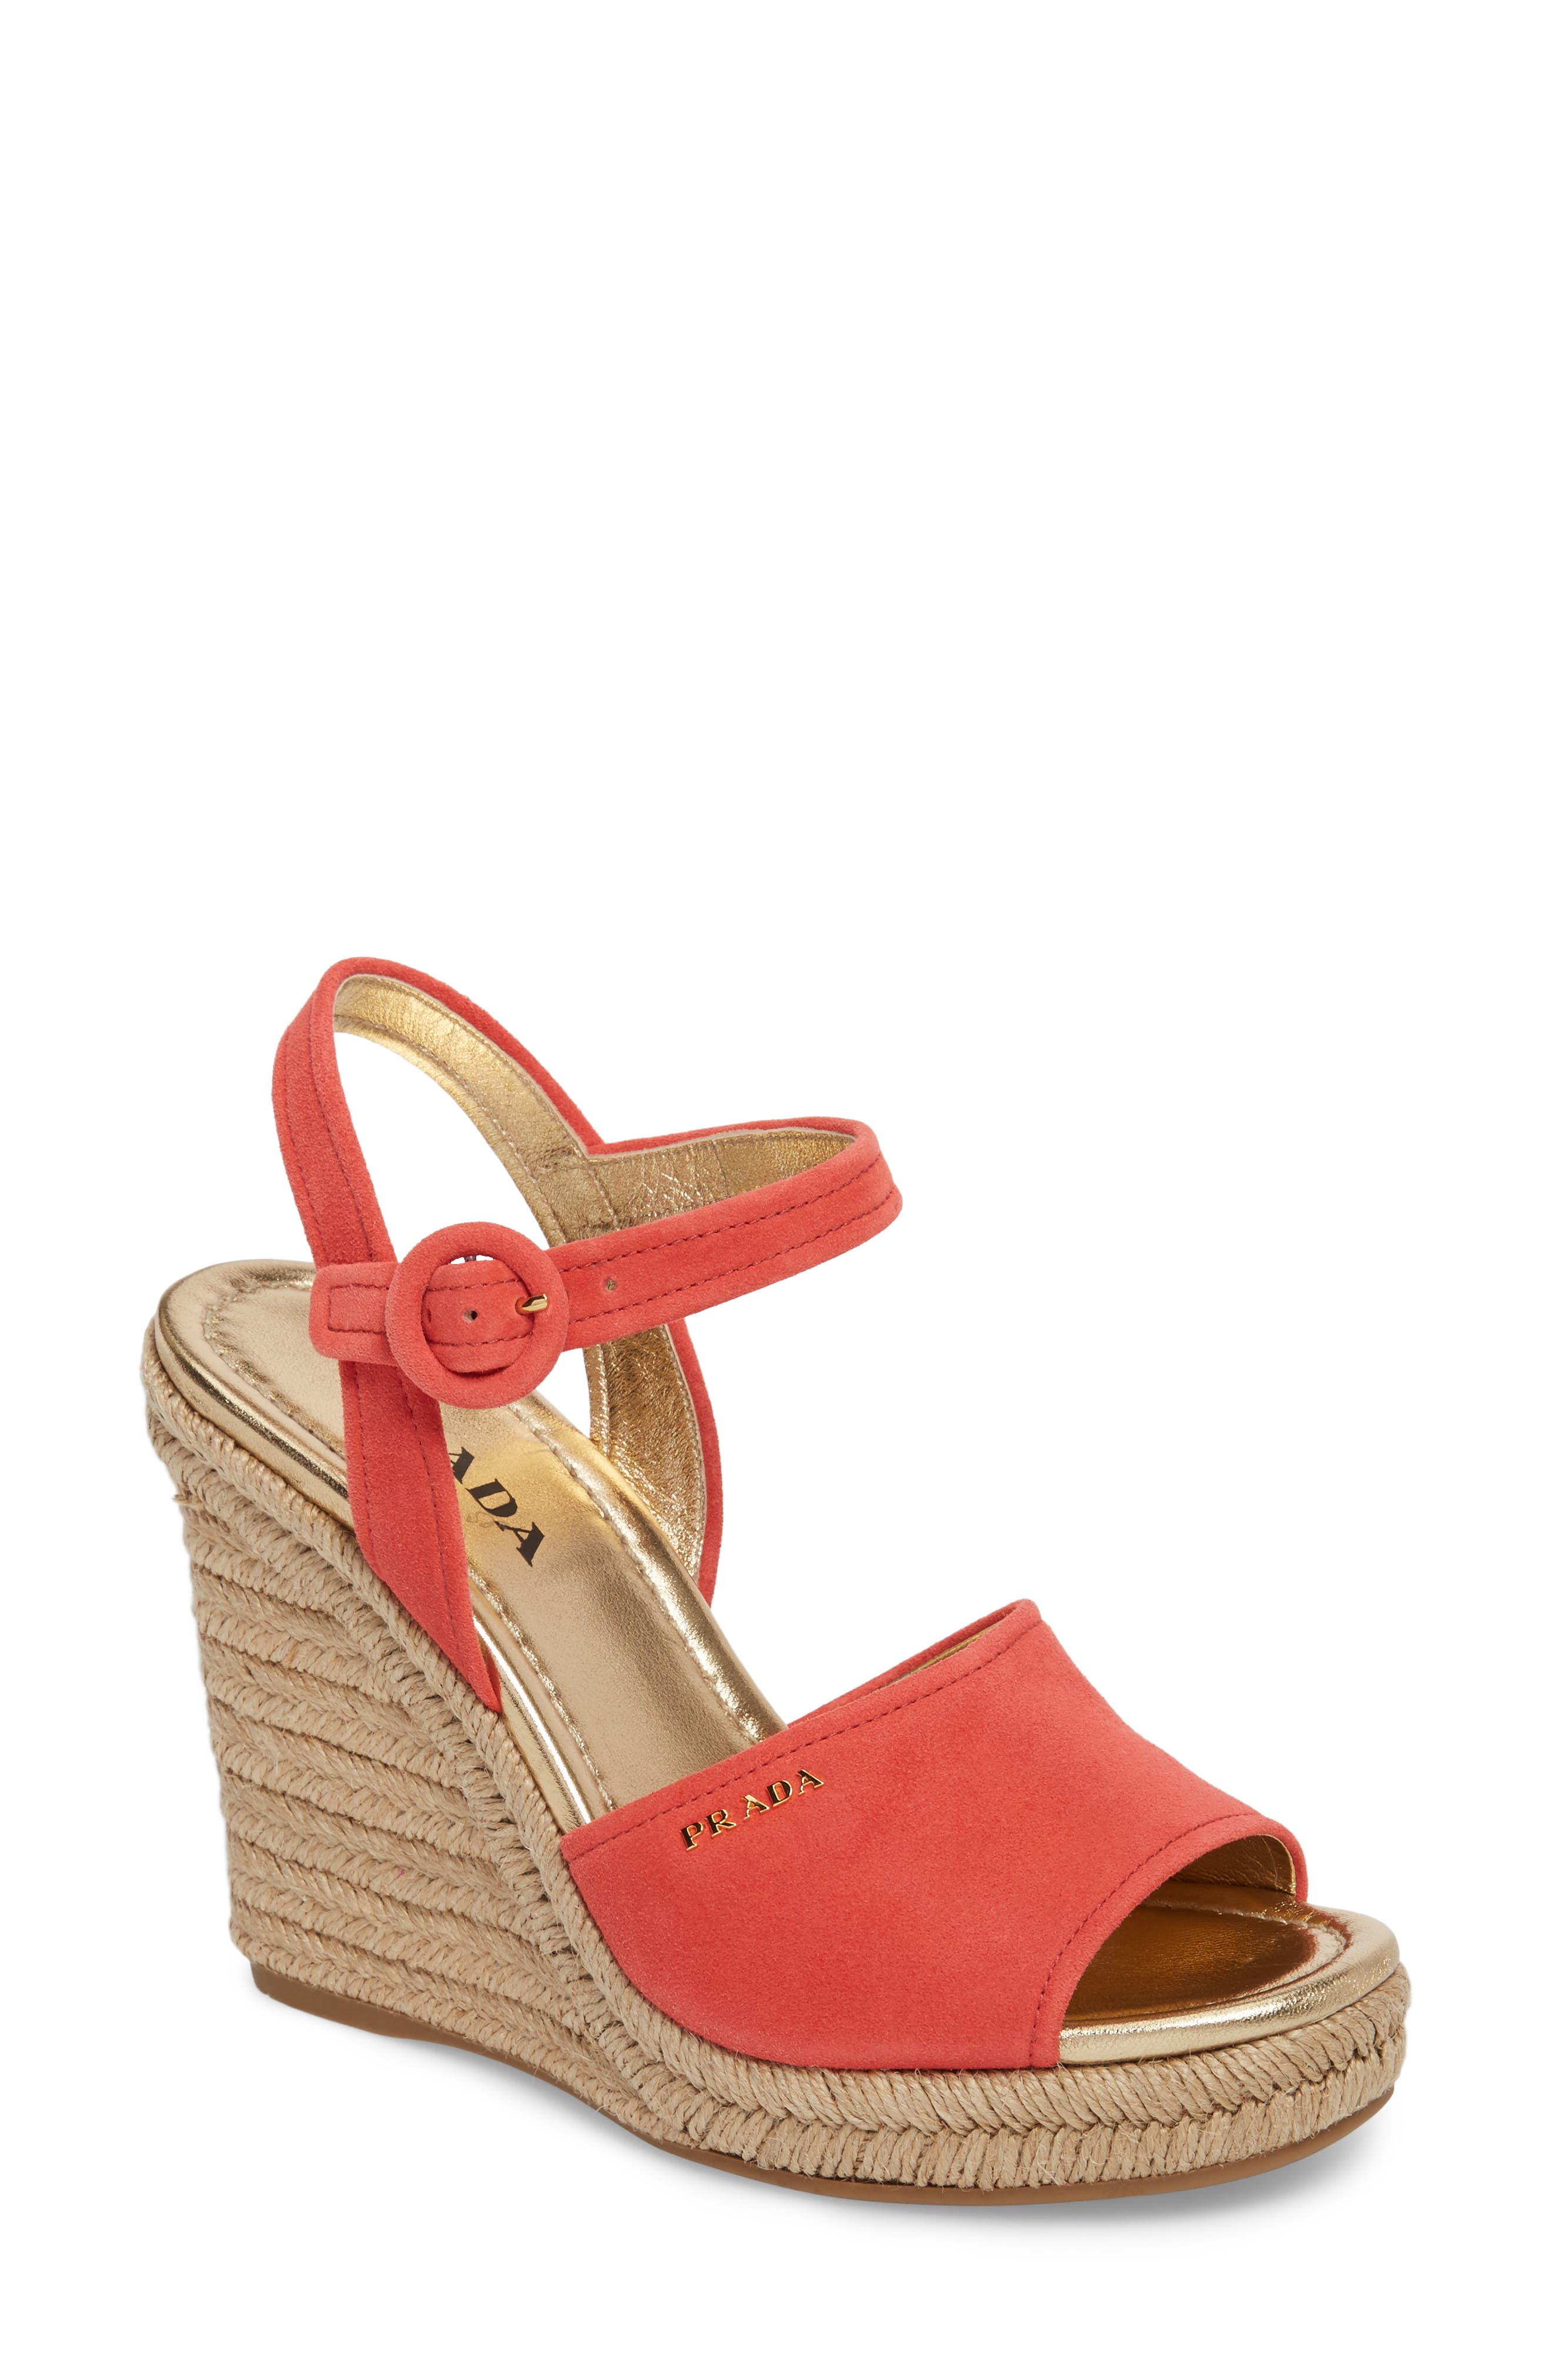 Espadrille Wedge Sandal,                         Main,                         color, Red